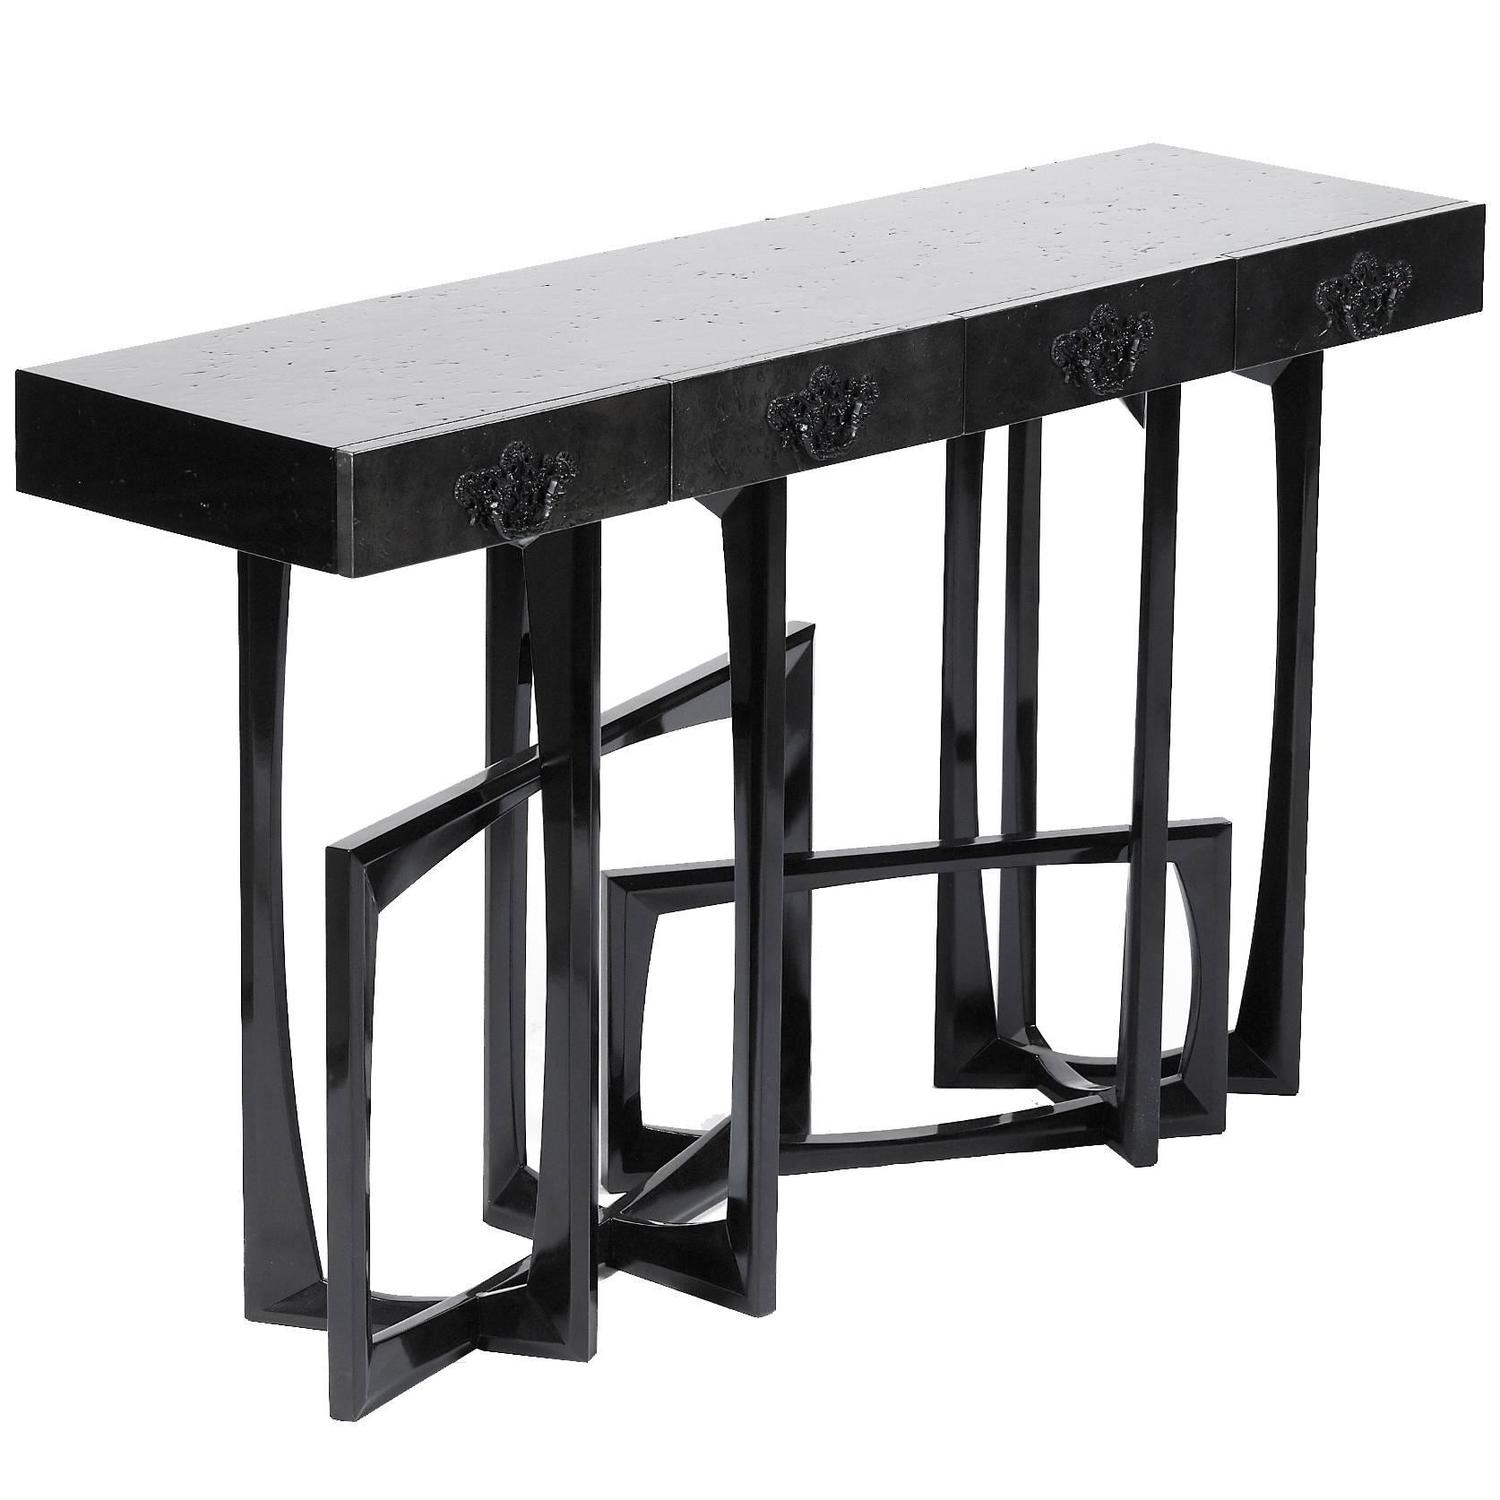 Boca do Lobo Metropolis Console 1st dibs 10 Incredible Modern Console Tables on 1st Dibs metropolis 04 org z